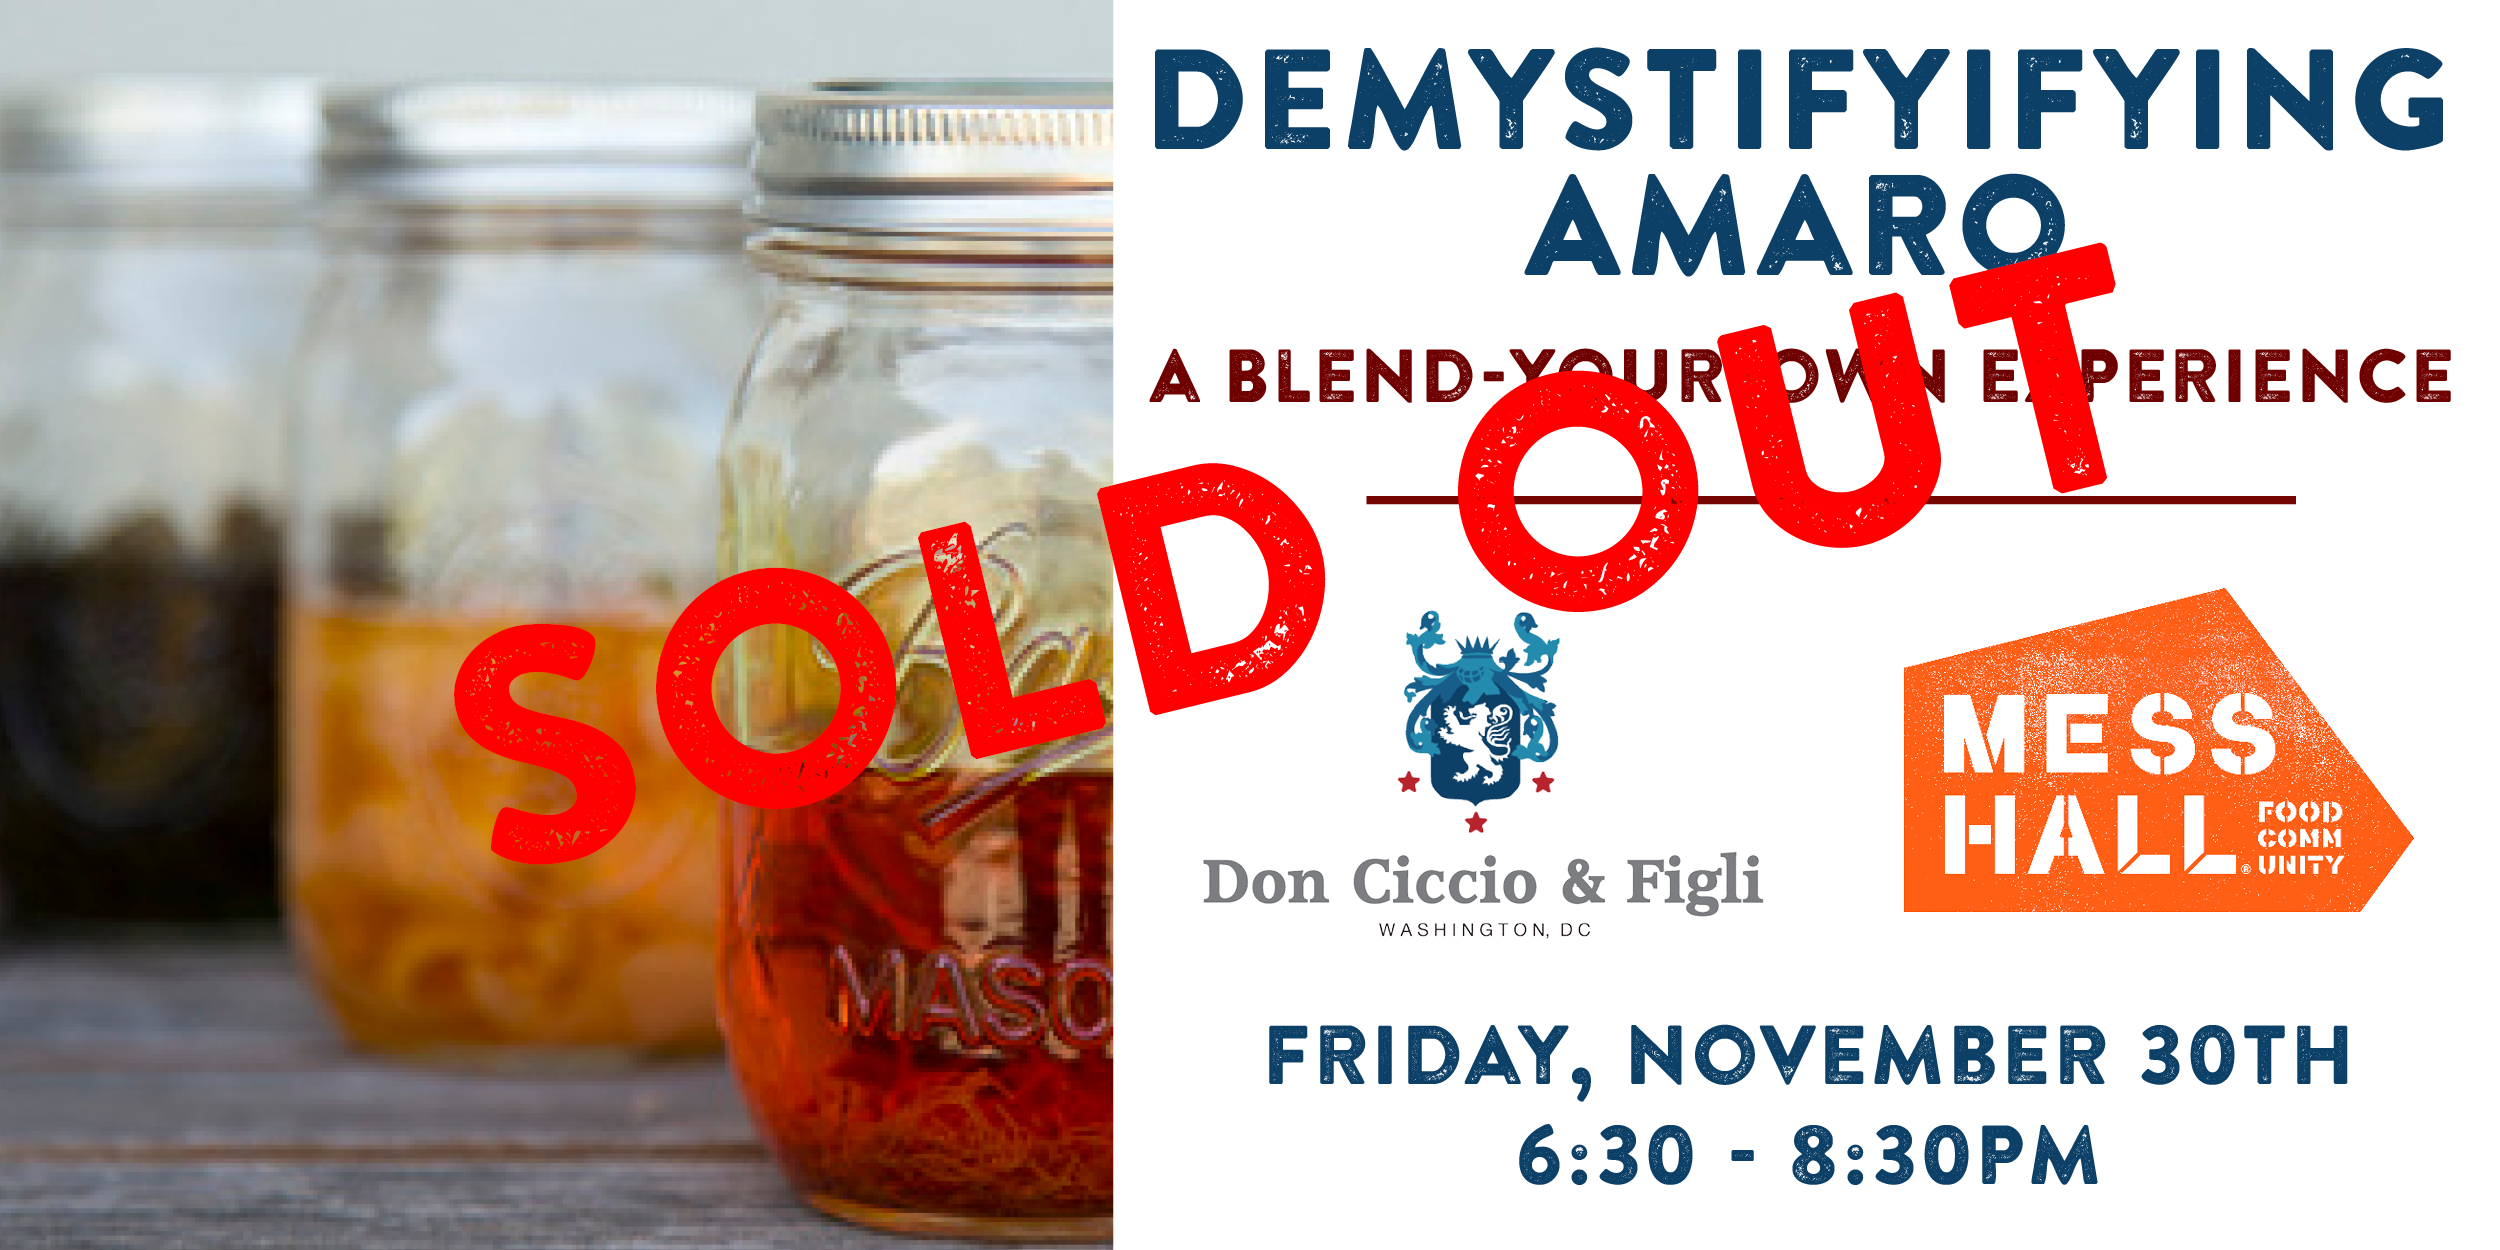 Demystifying Amaro, Friday, November 30th - Click for tickets